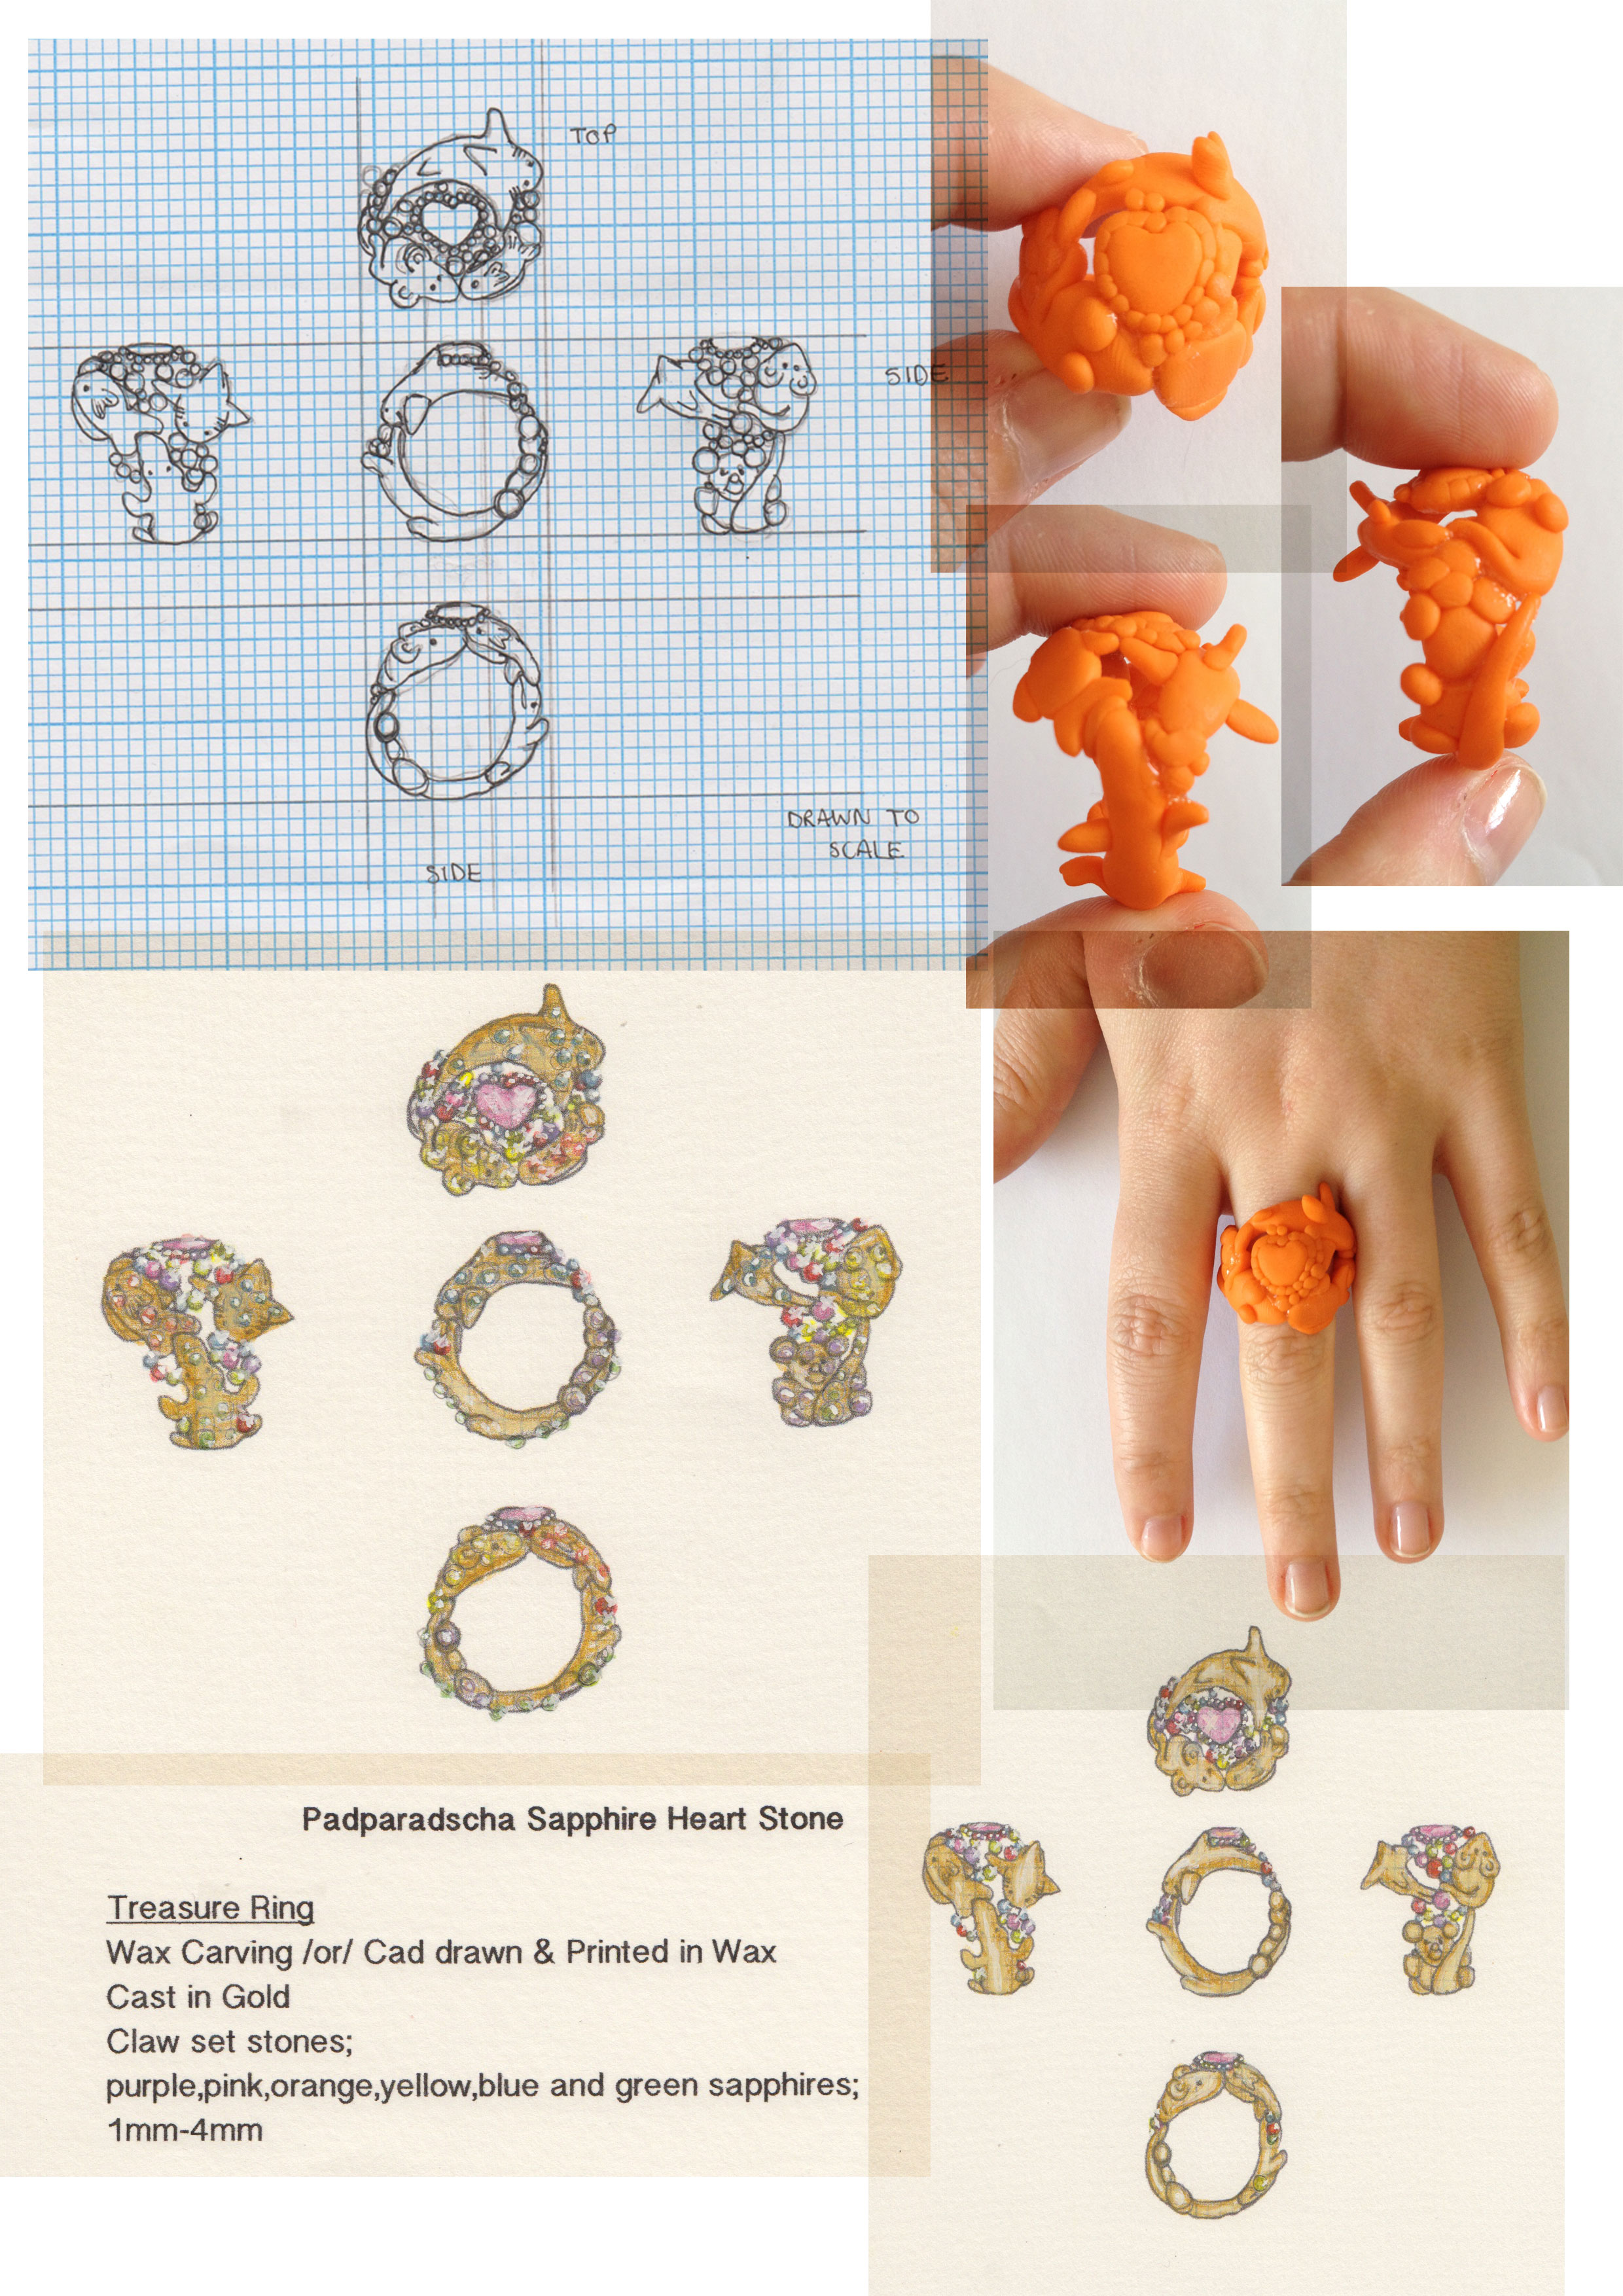 Drawn jewelry technical drawing Drawing Saint for  Design